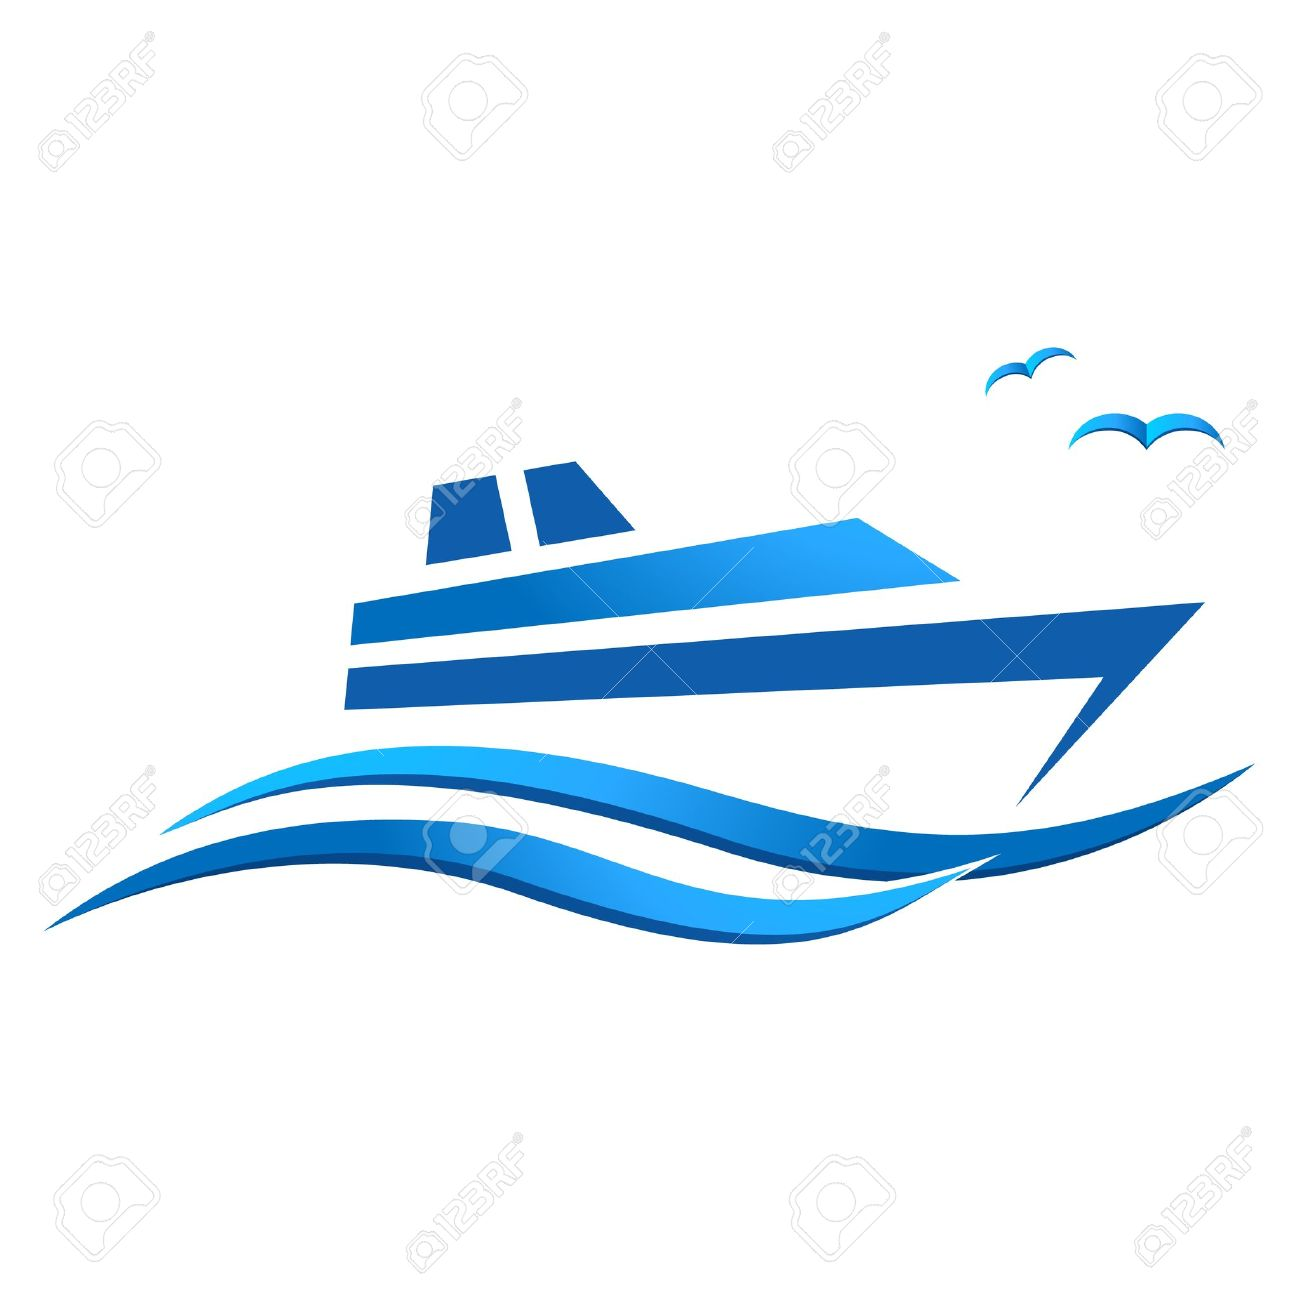 cruise ship royalty free cliparts vectors and stock illustration rh 123rf com  free clipart of carnival cruise ship